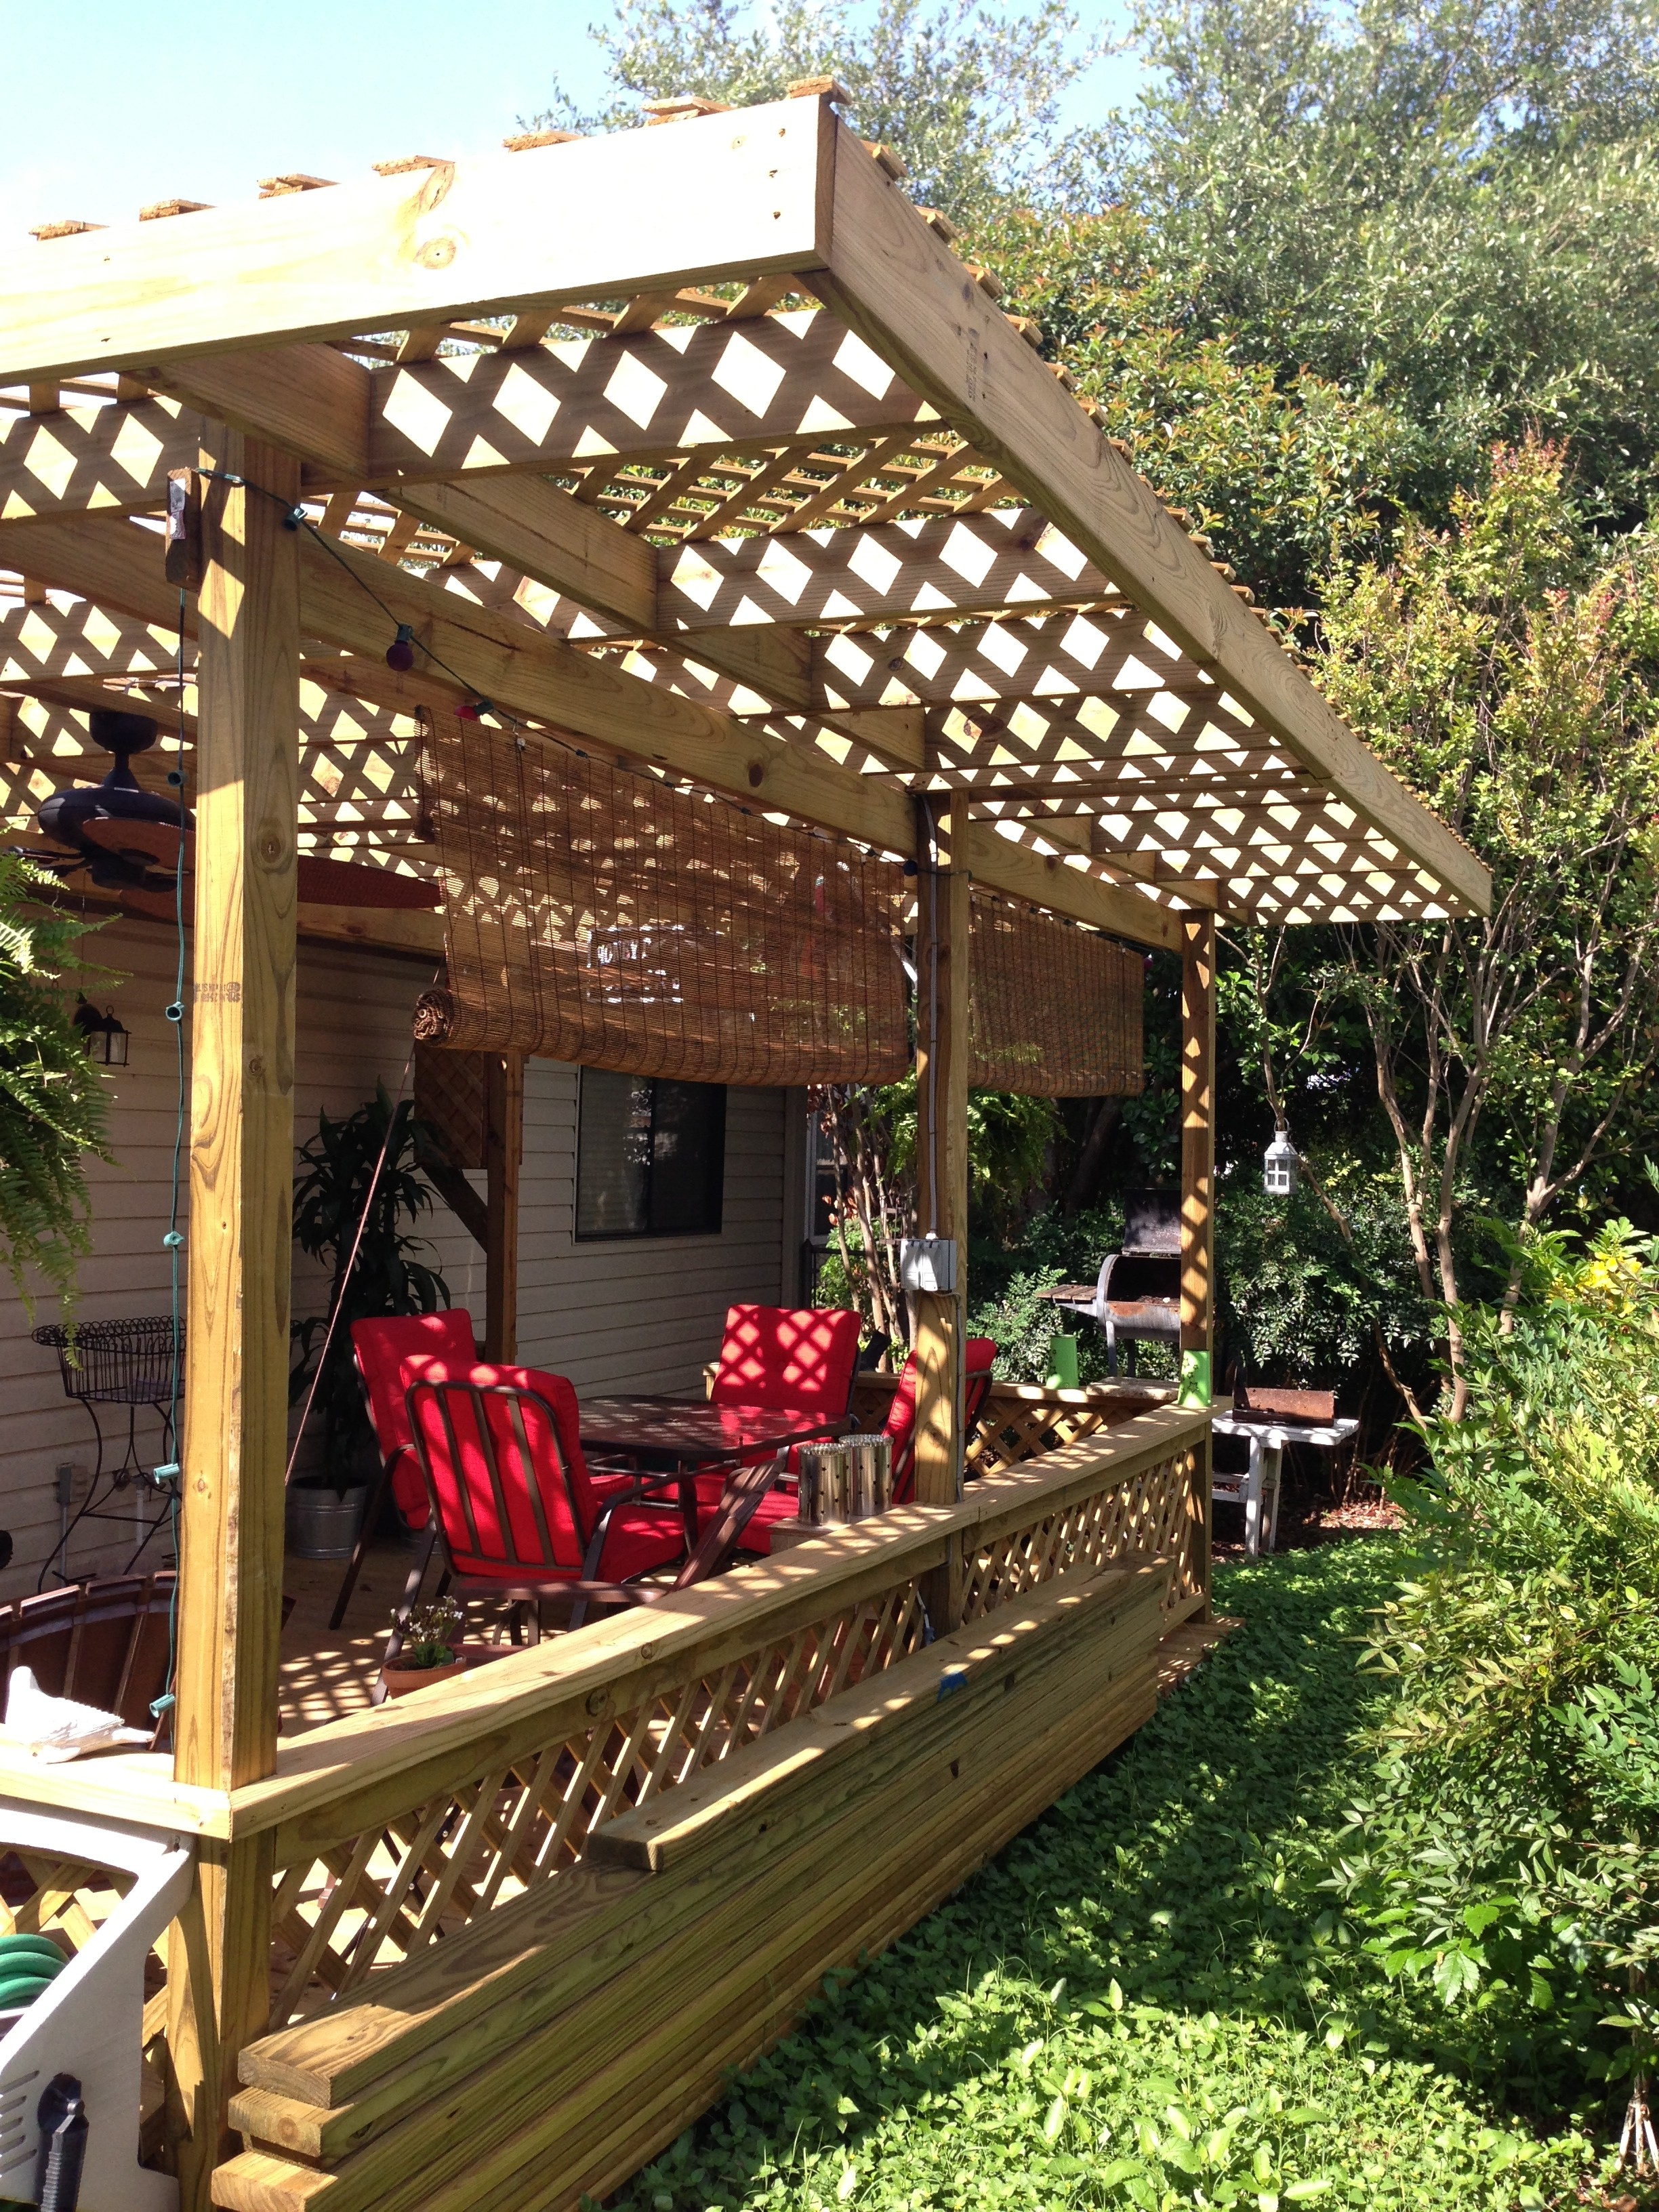 Deck Lattice Roof Creates a Beautiful Pergola Style